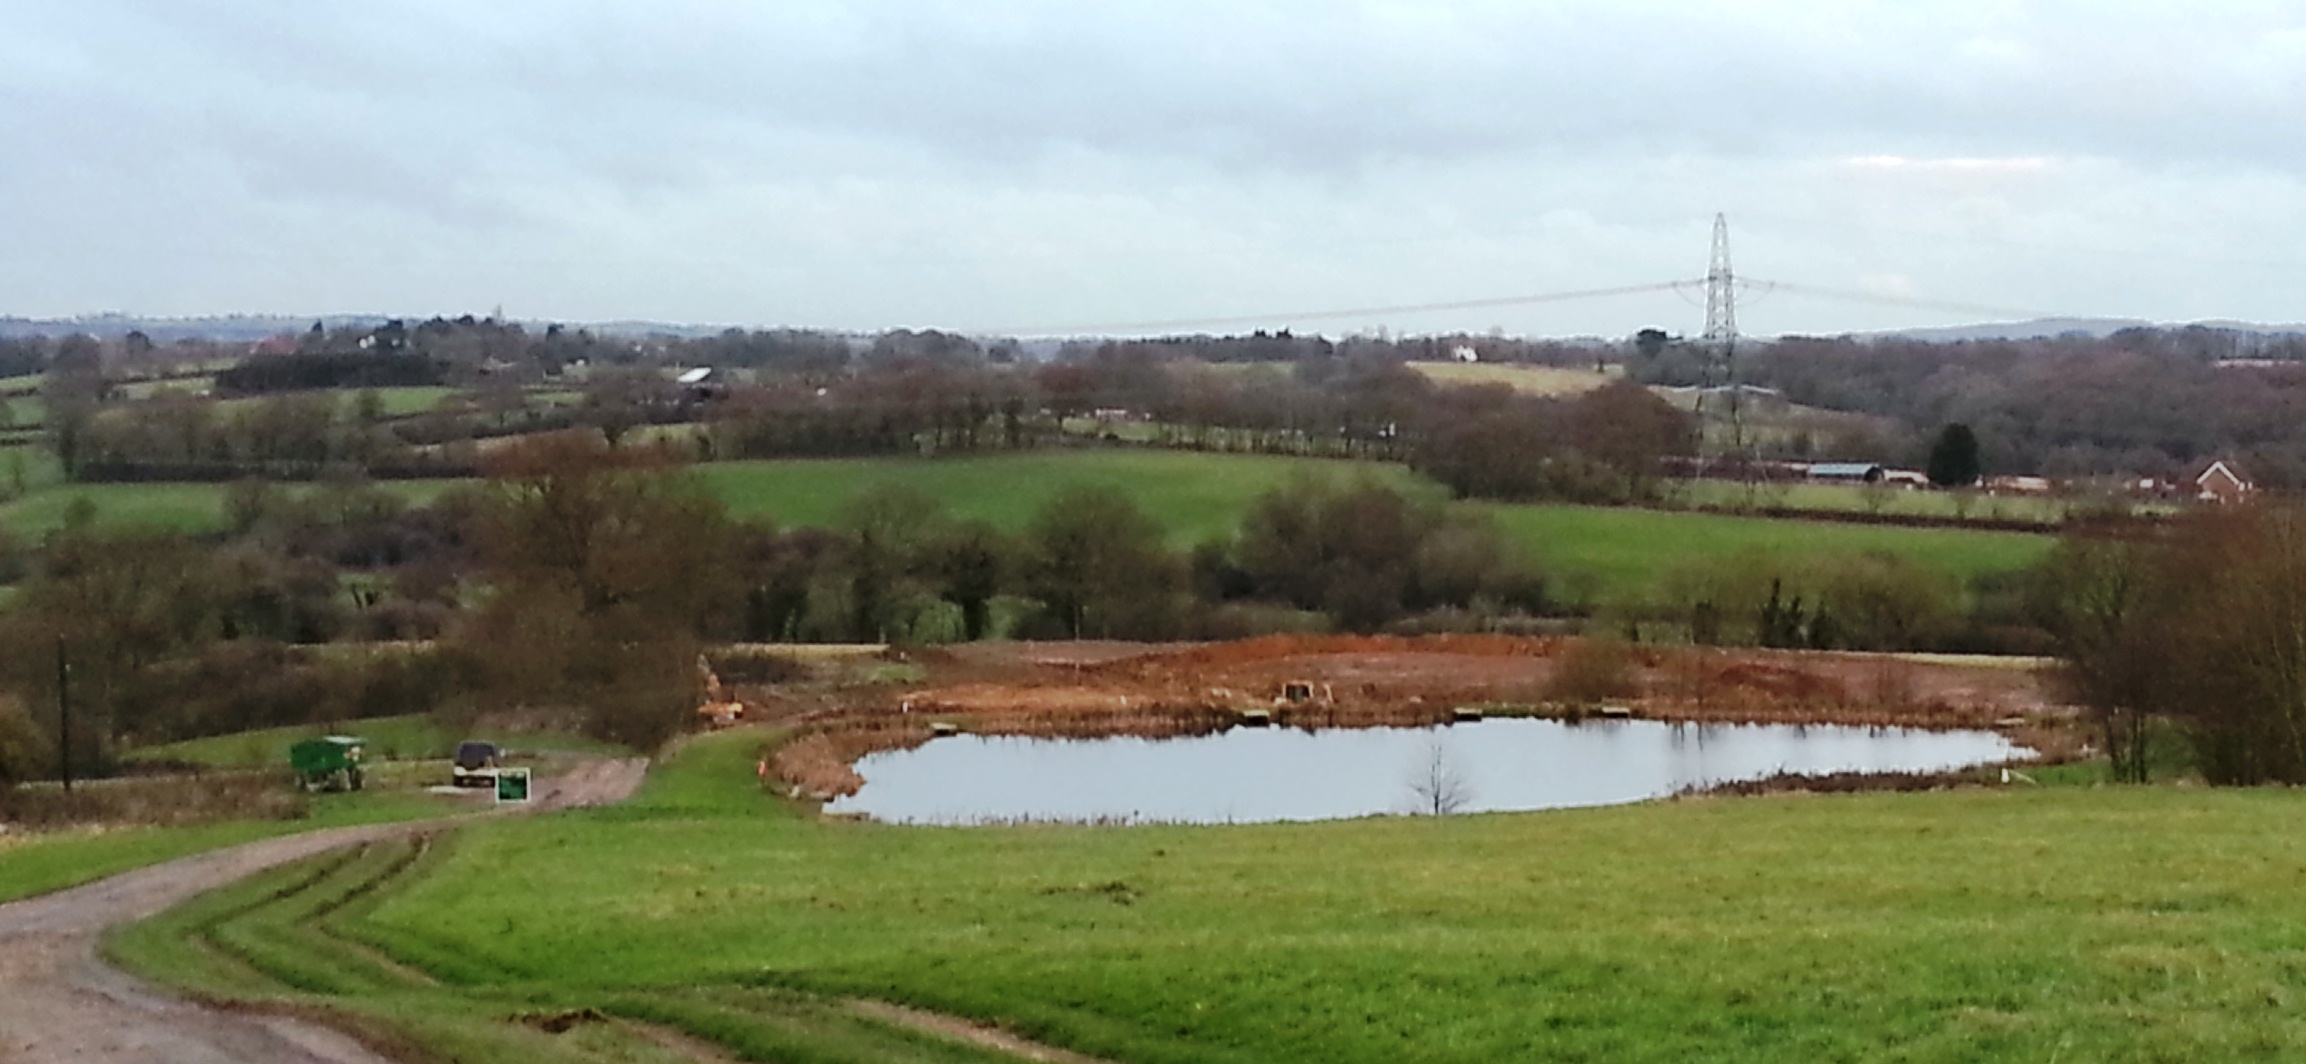 New lake under construction at Brick Farm